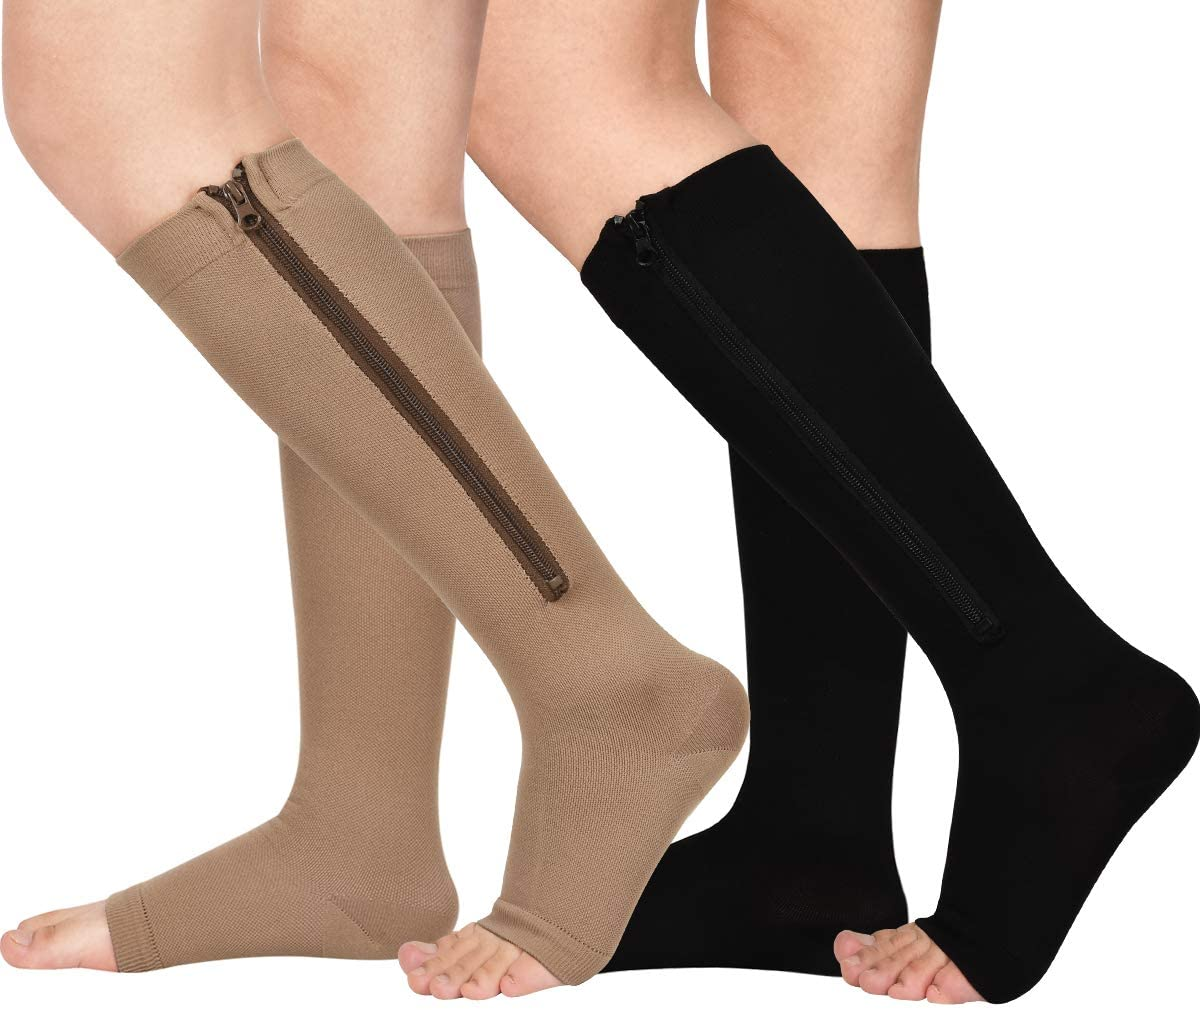 Limited price sale 2 Pairs Zipper Compression Socks 15-20 Direct stock discount Women Open Men for mmHg